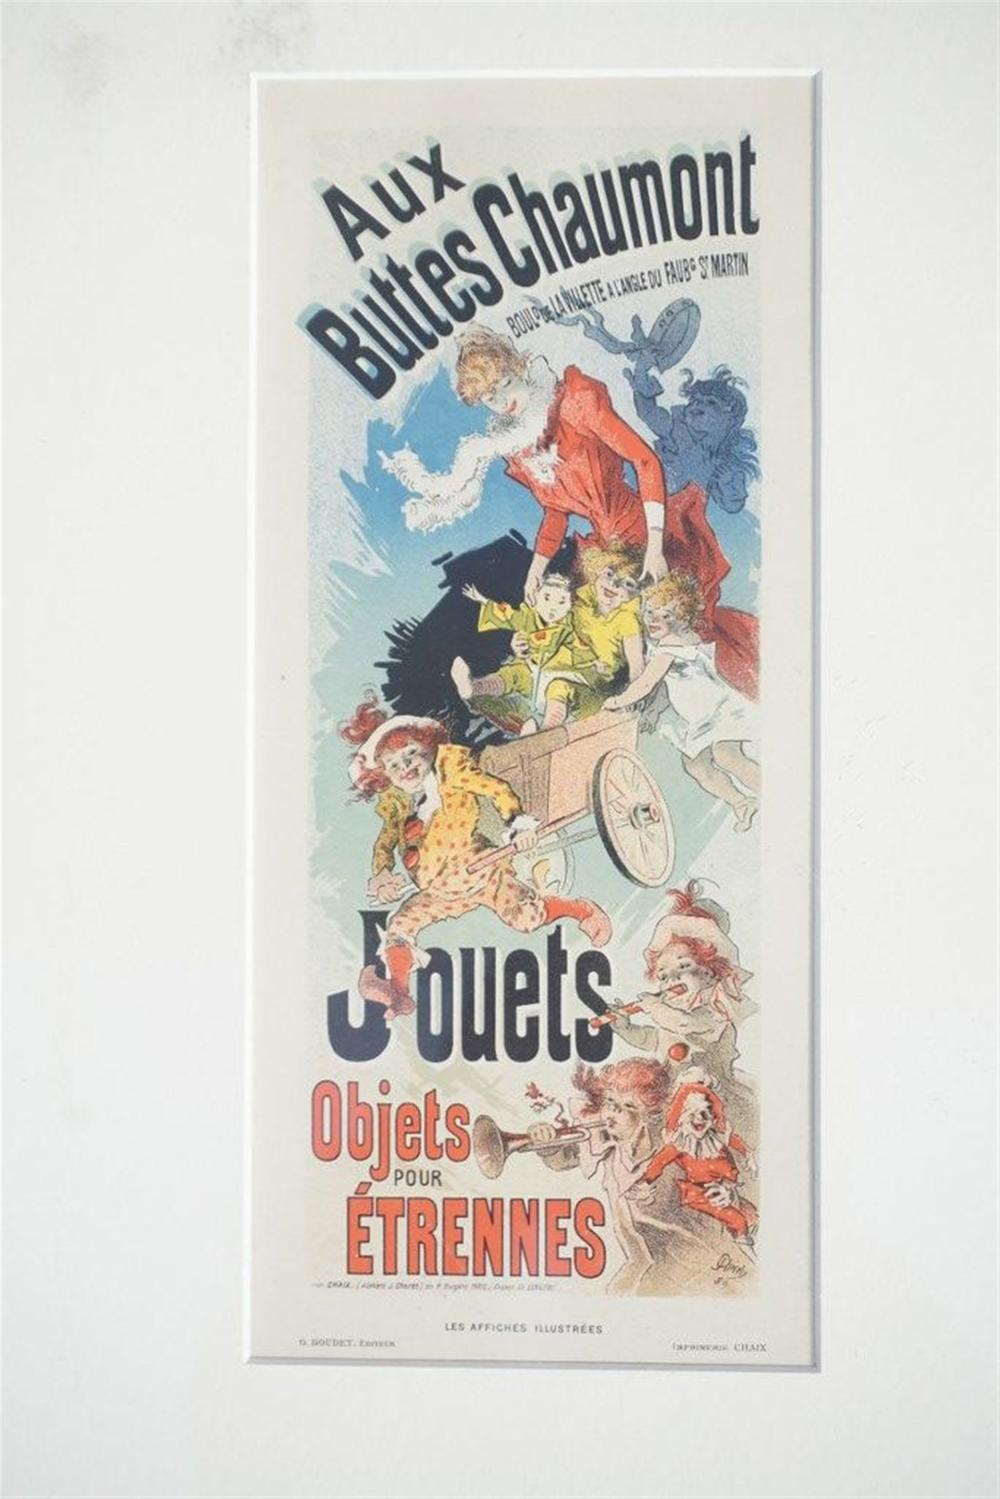 "1896 CHERET AUX BUTTES CHAUMONT JOUETS STONE LITHO POSTER, SHEET SIZE 8 3/4"" X 12 1/4"", EXCELLENT CONDITION, SHRINK WRAPPED AND MATTED, FROM RETIRED DEALERS COLLECTION."